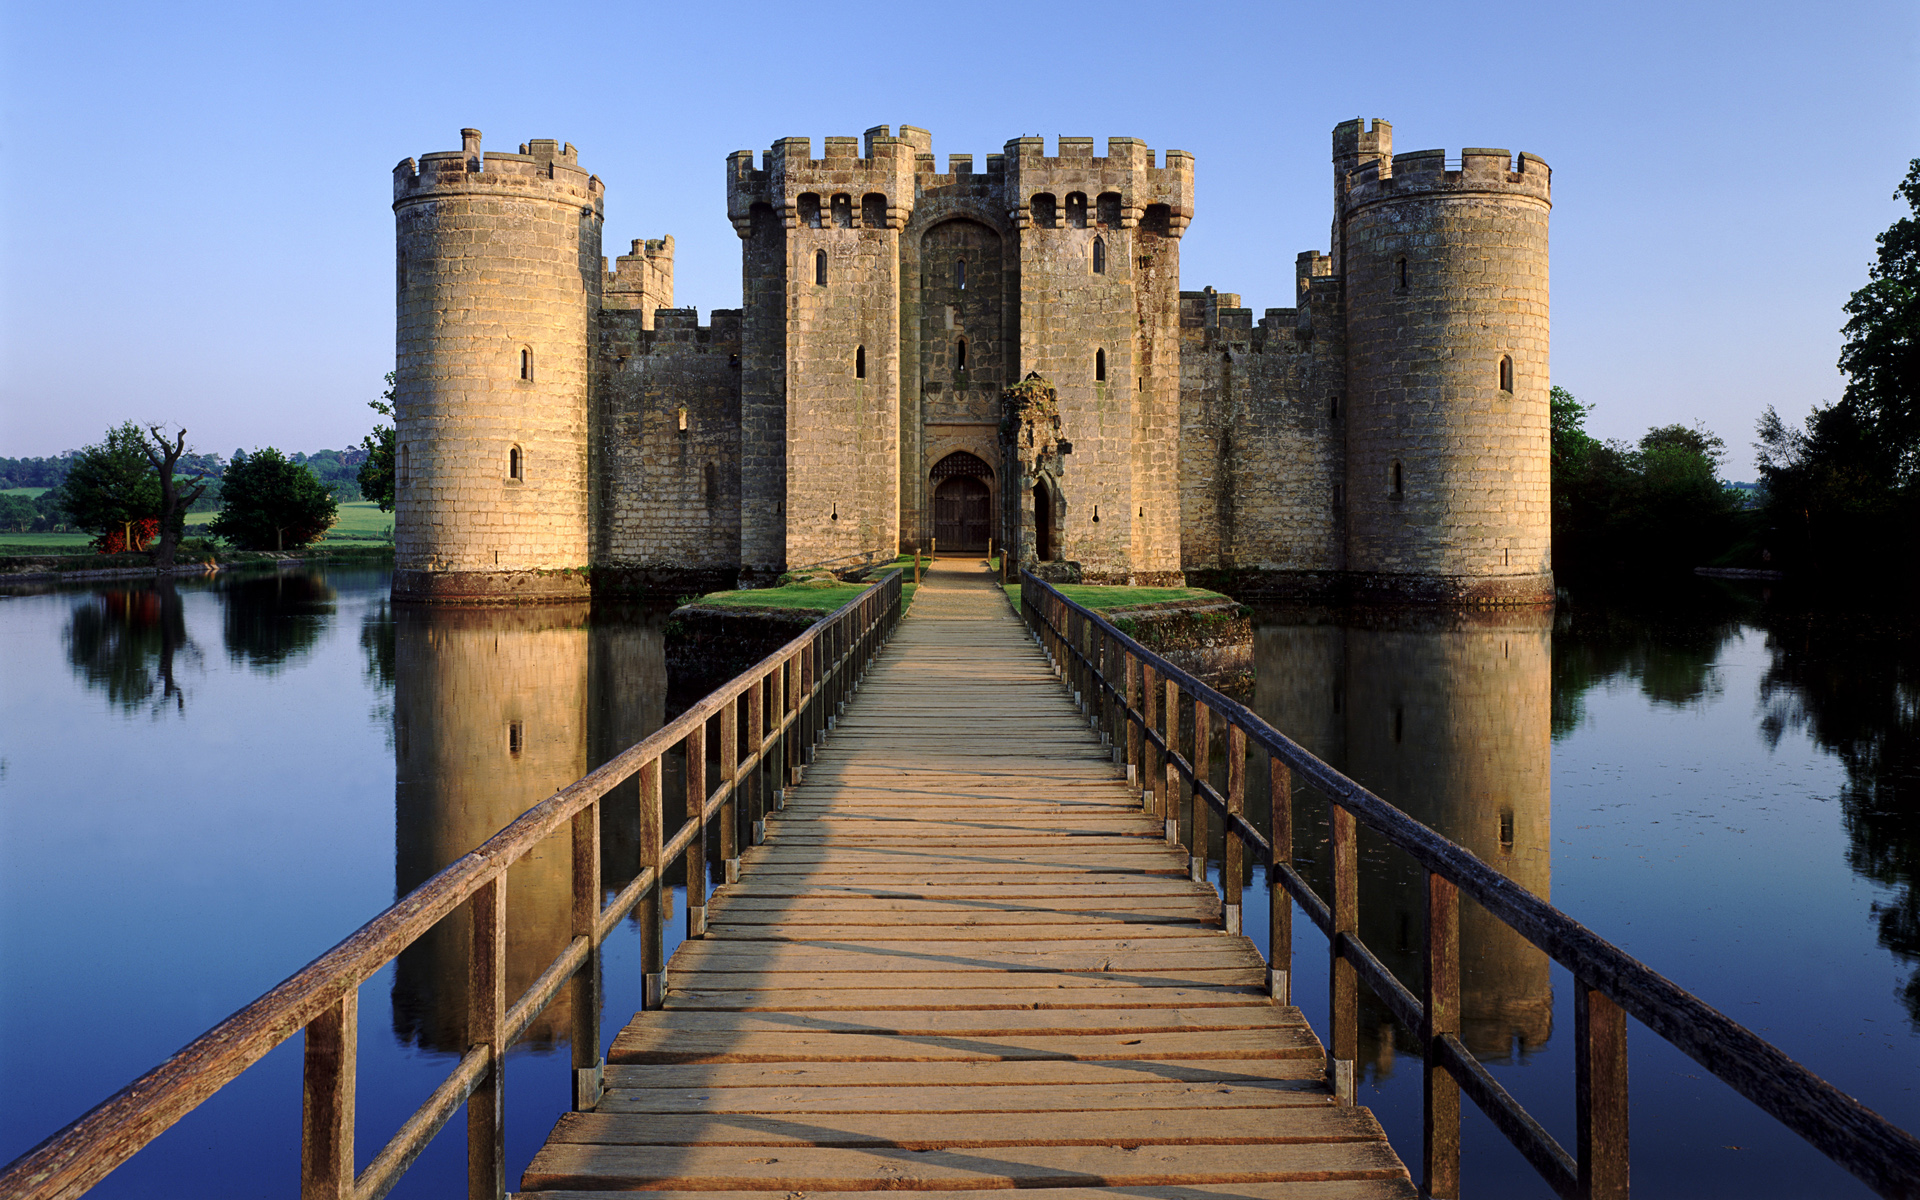 Castle England Free Images At Clker Com Vector Clip